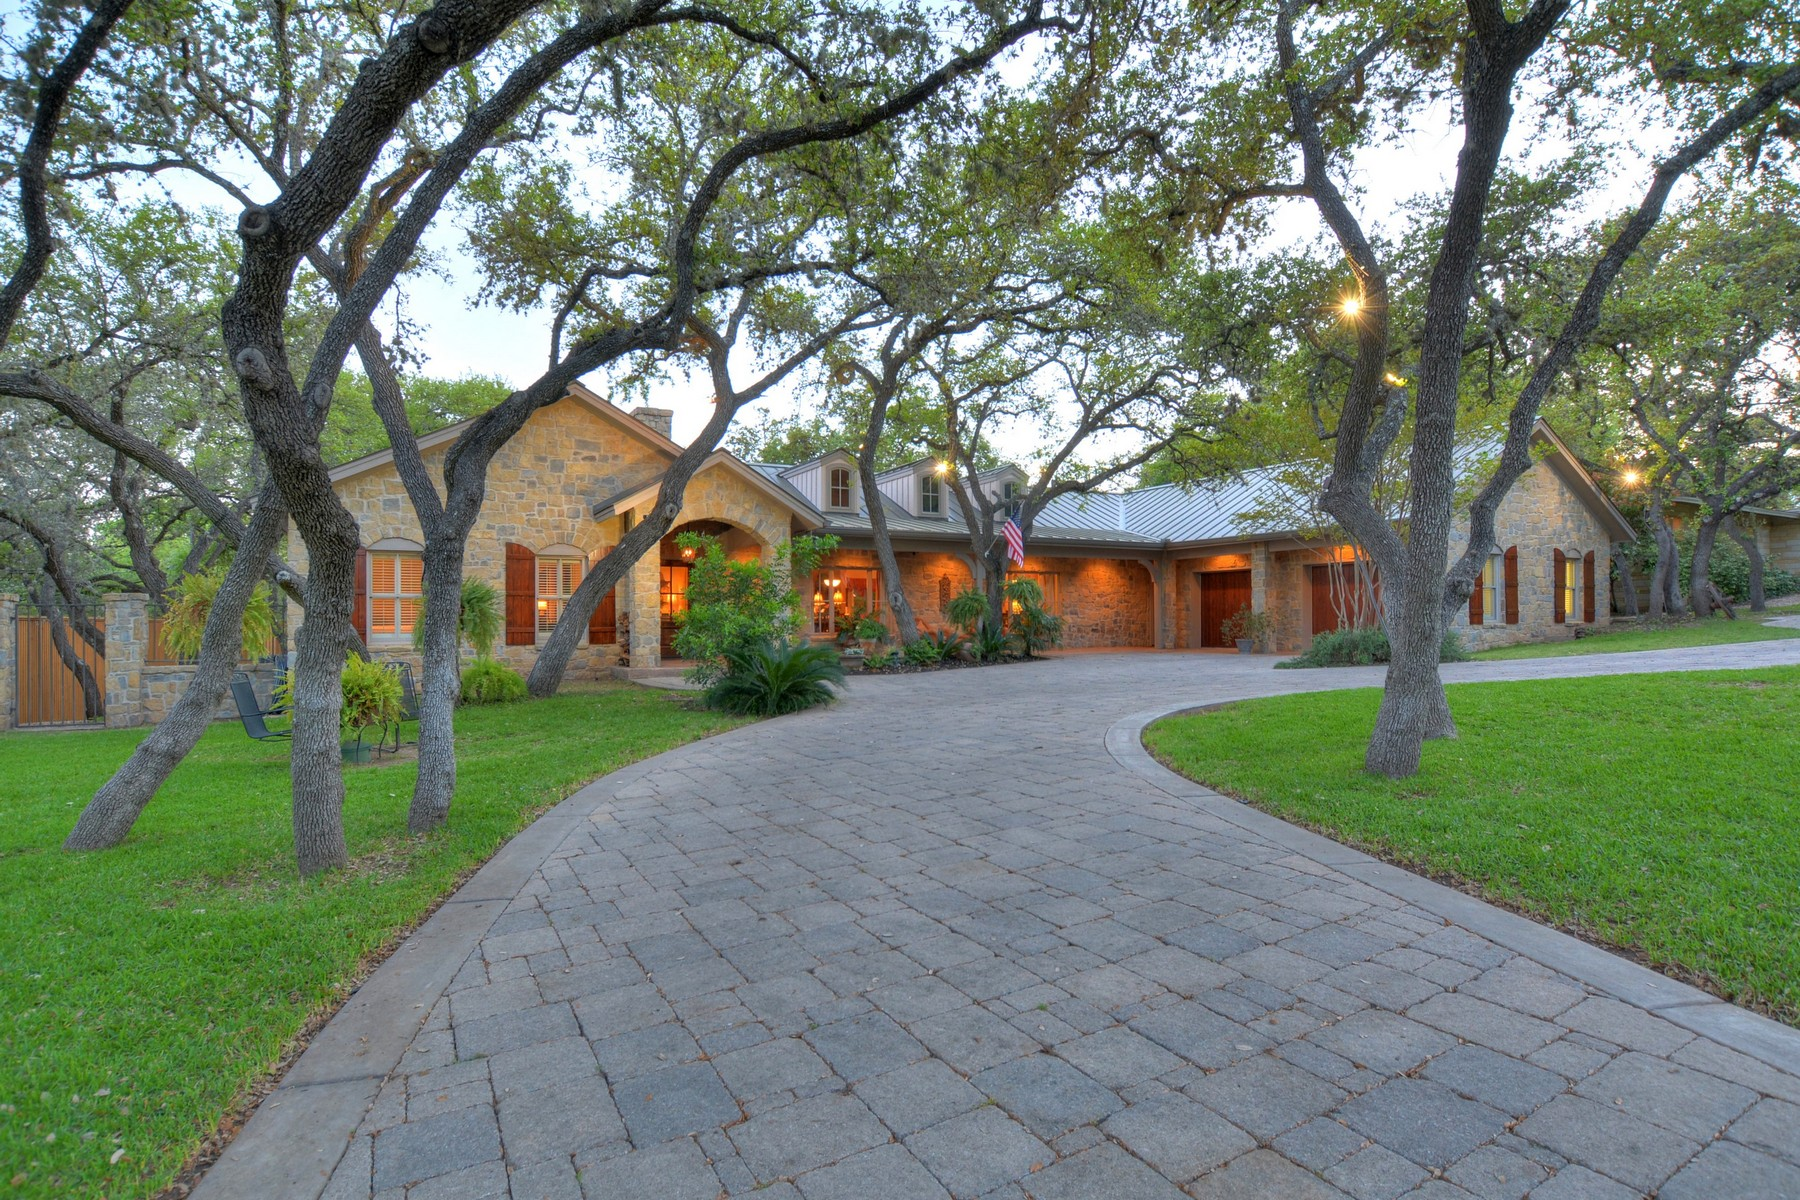 Single Family Home for Sale at Award Winning Remodel Down to the Studs! 4509 Small Dr Austin, Texas 78731 United States